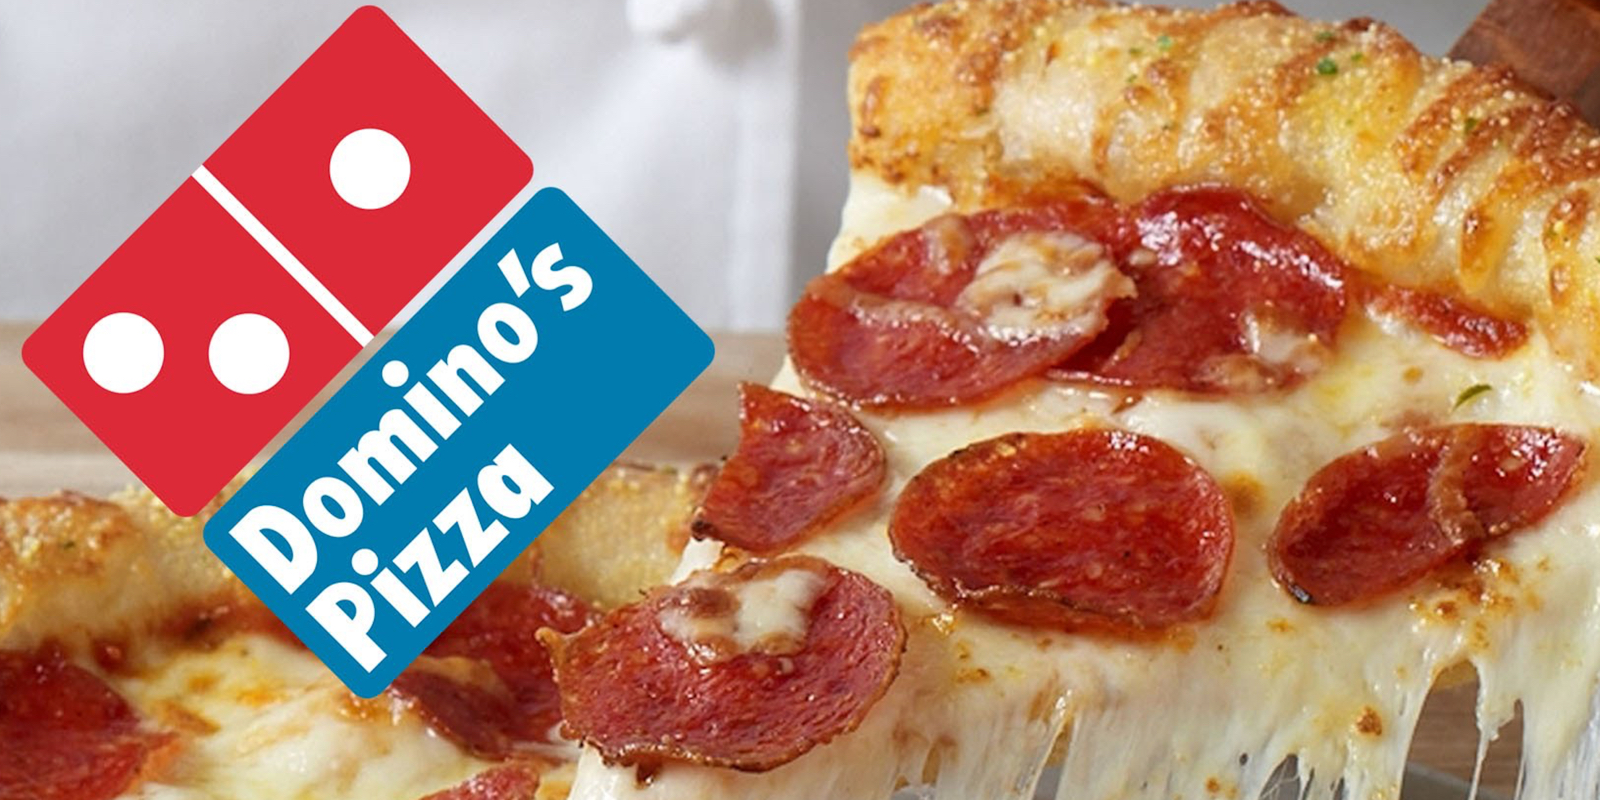 Gift card deals up to 20% off: Domino's, Xbox, BJ's, Famous Footwear, more